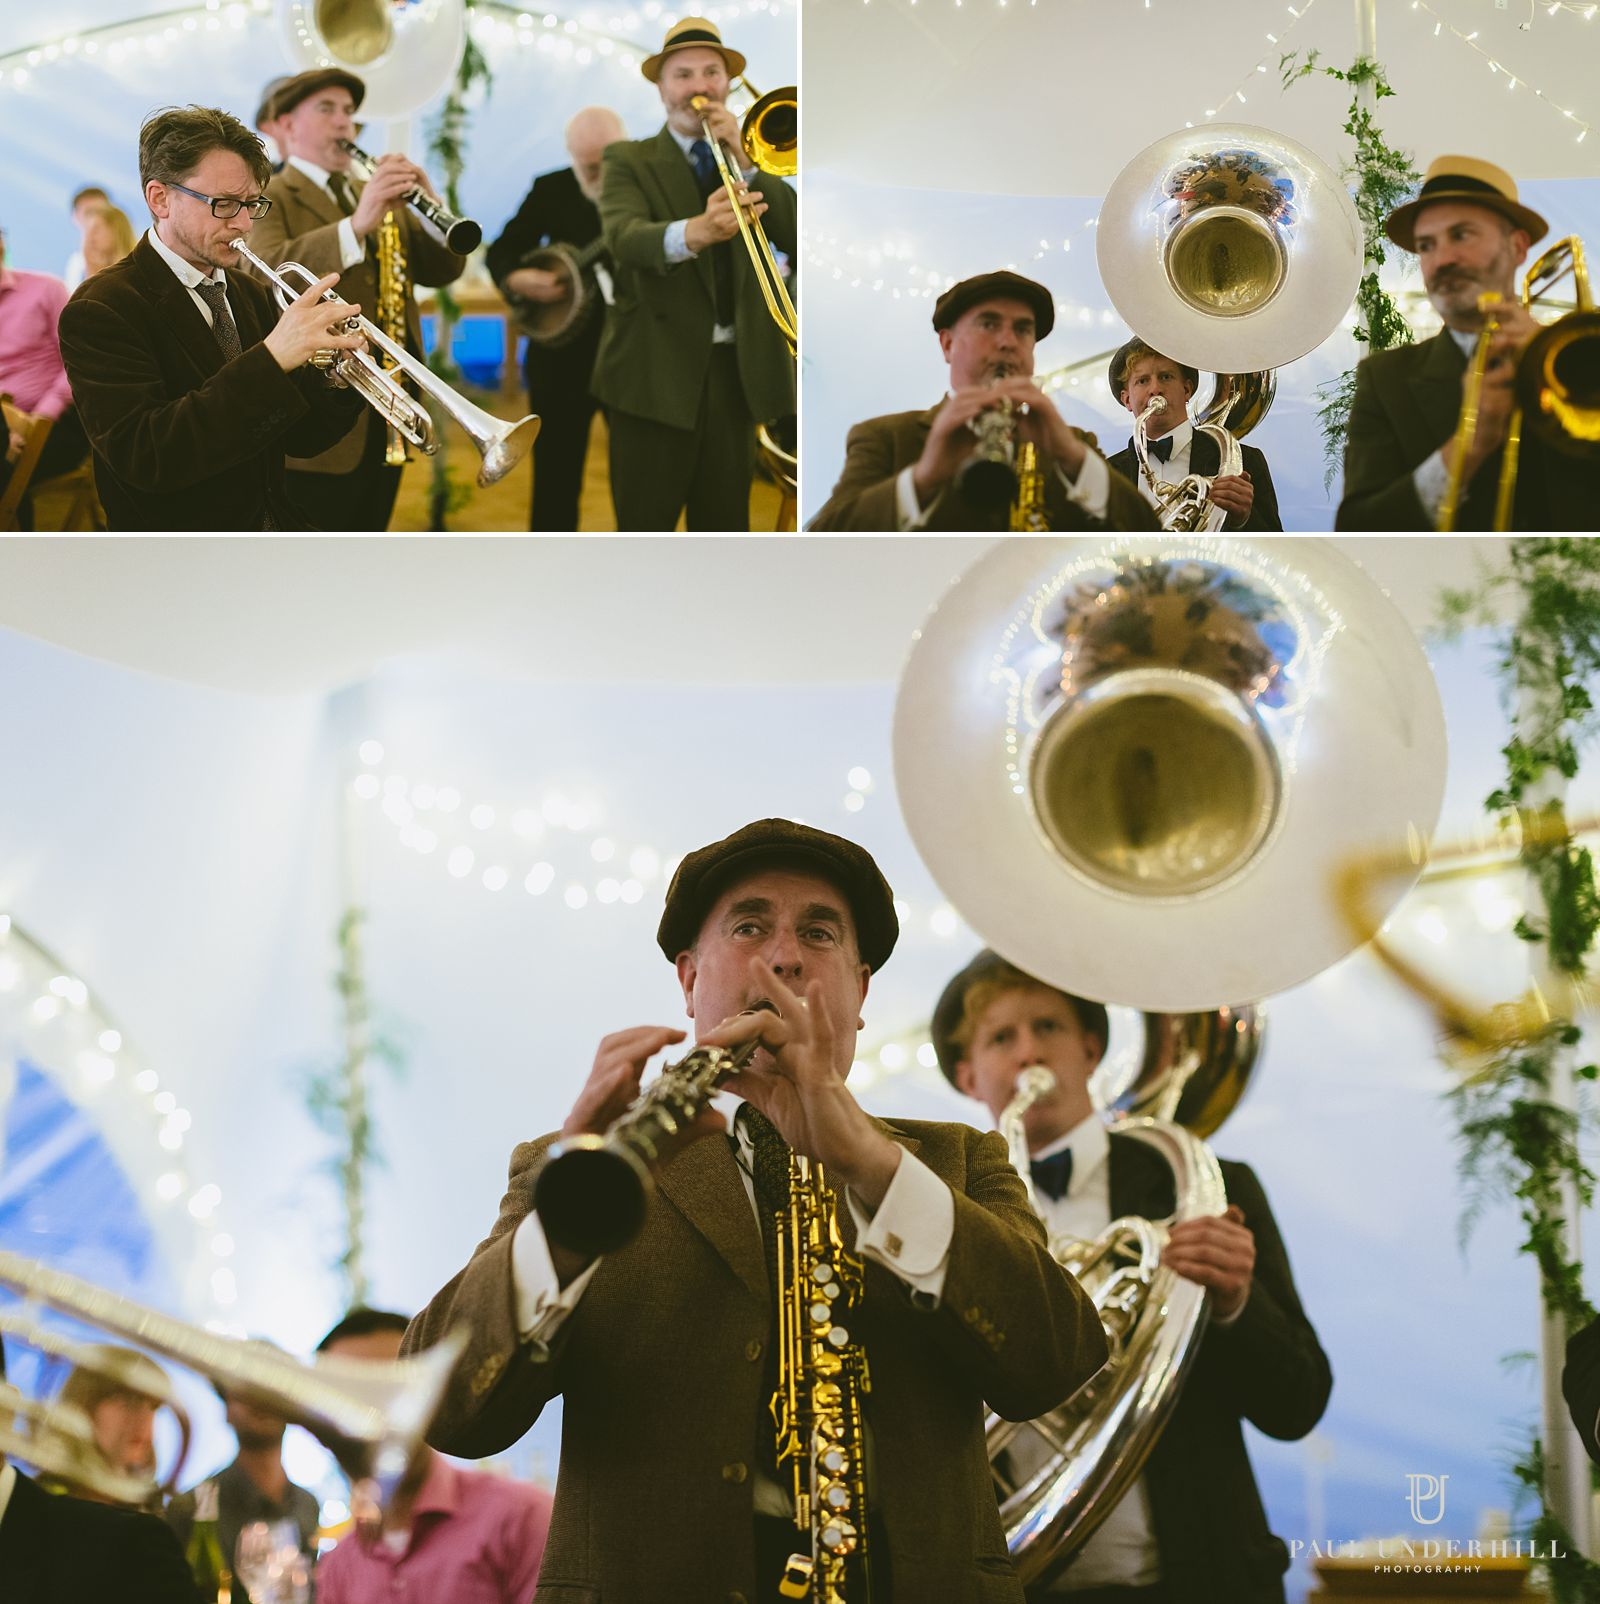 Brass band wedding entertainment